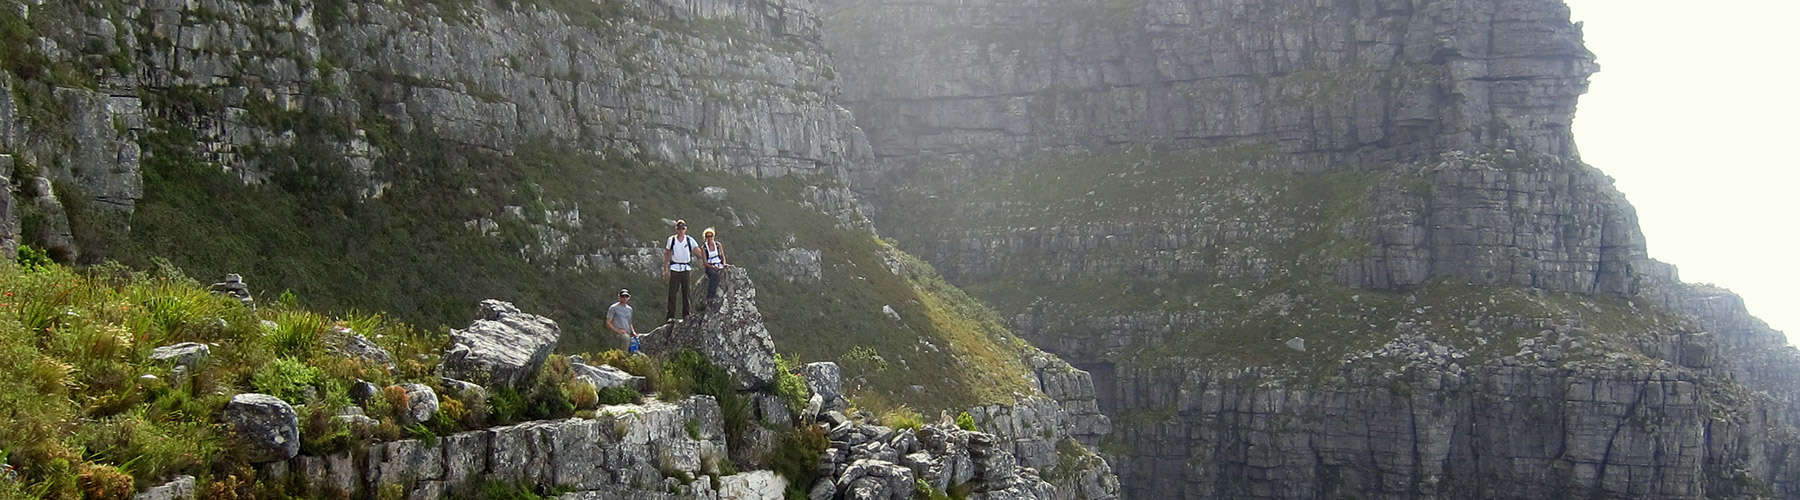 Why Hike Table Mountain